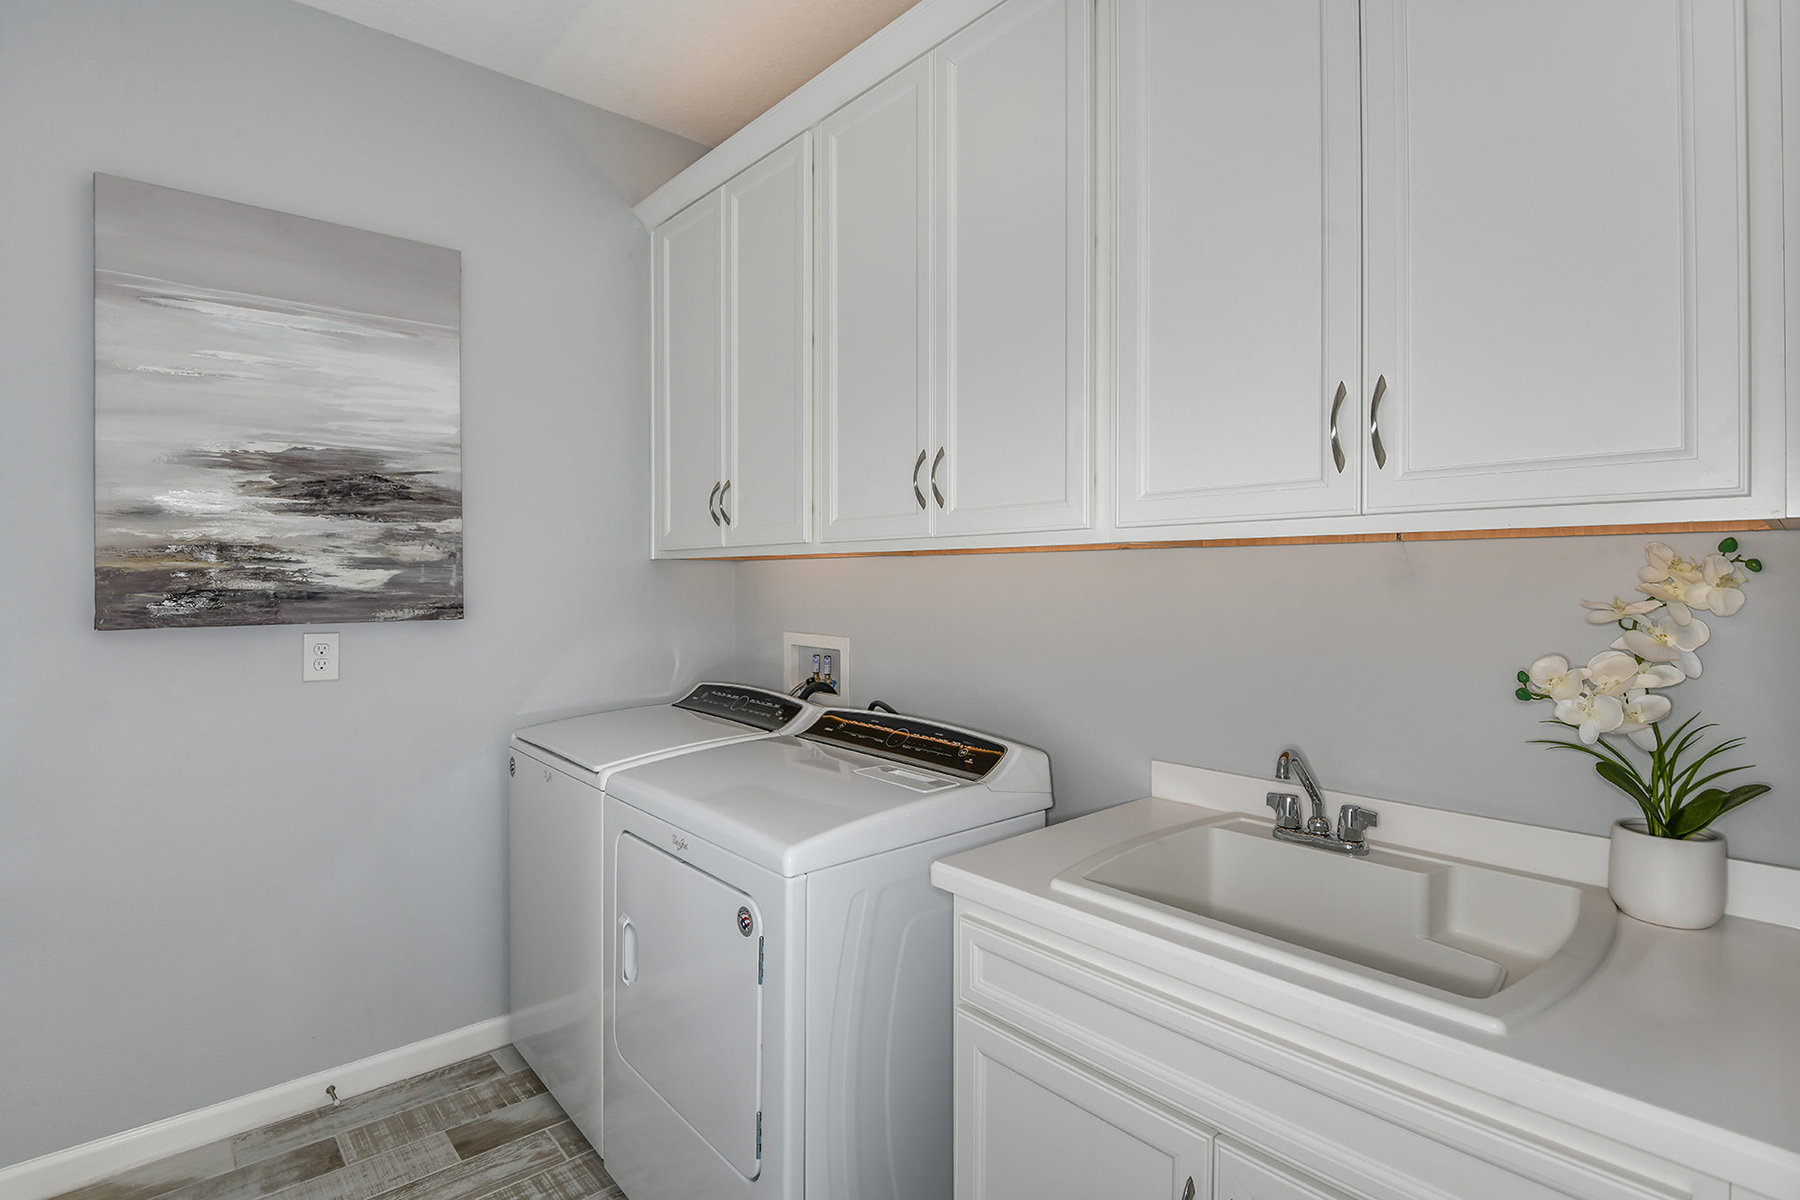 Coquina II Plan Laundry at Wellen Park - Renaissance in Venice Florida by Mattamy Homes